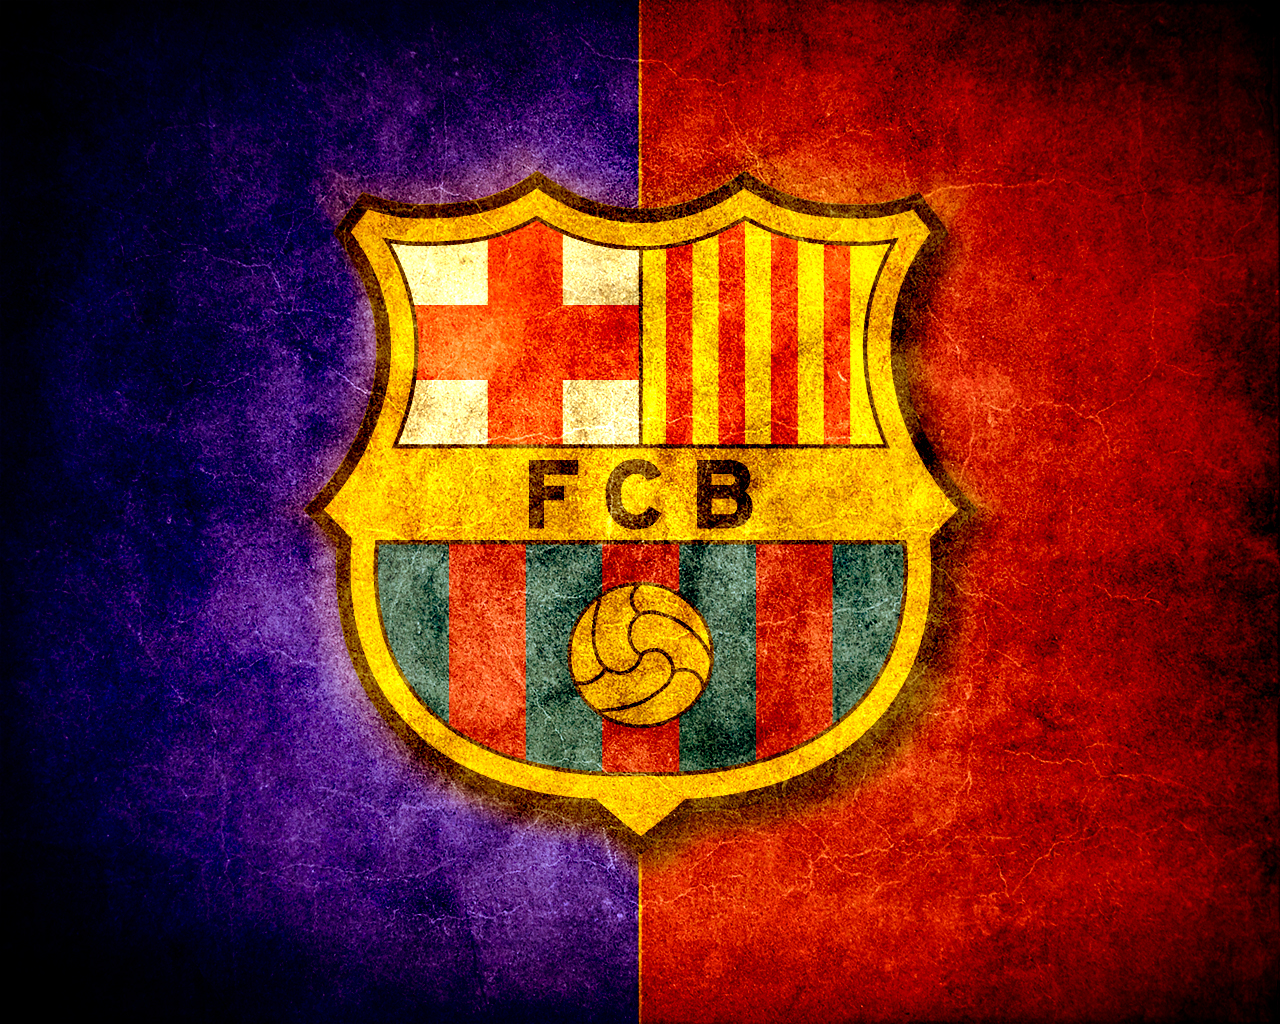 FC Barcelona Crest Wallpaper | Barcaloco.com - Everything for the ...